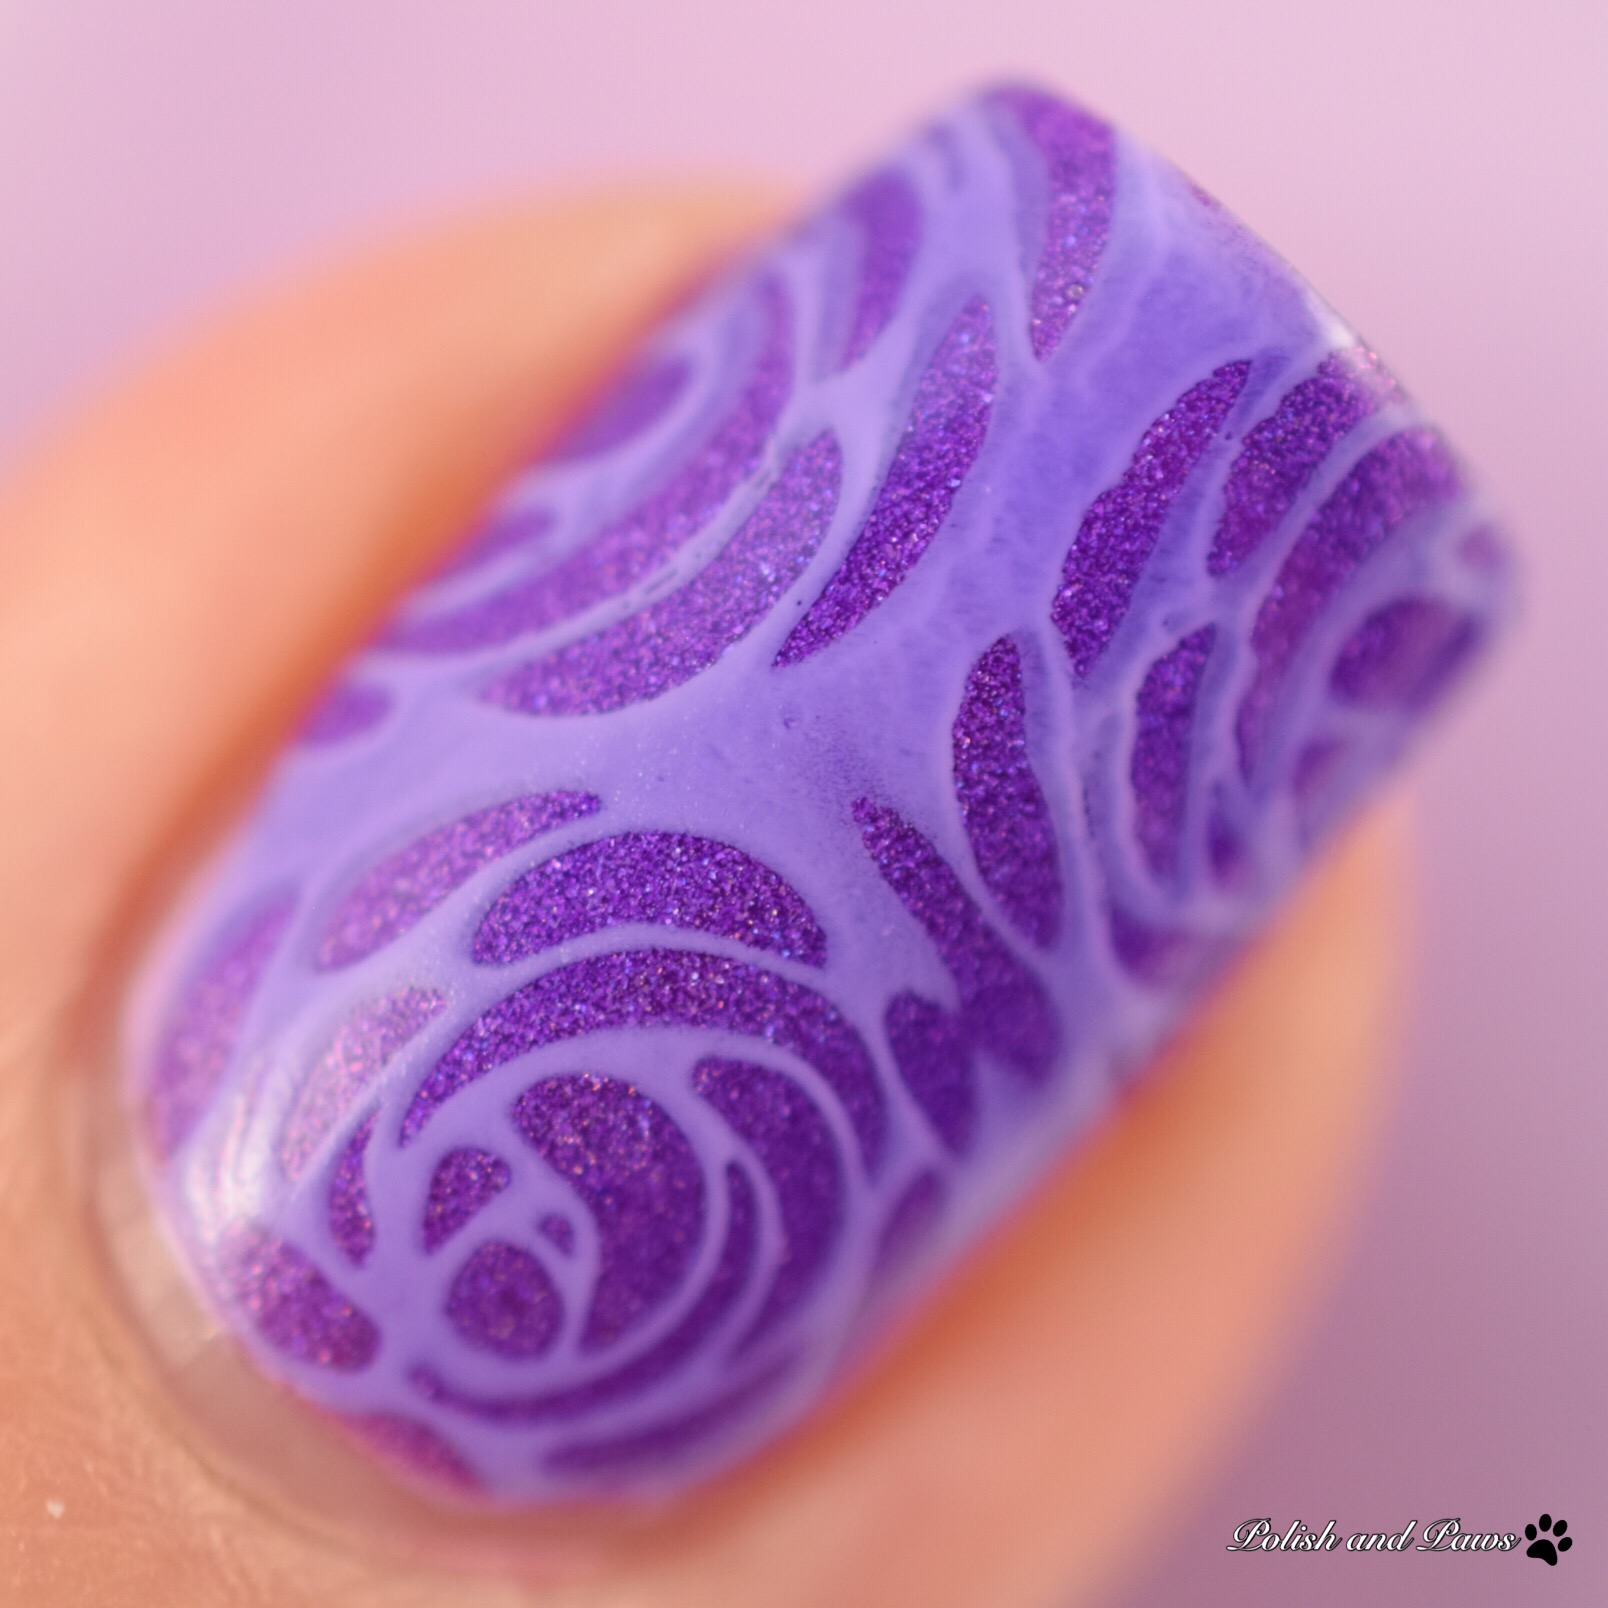 Bad Bitch Polish Lilac